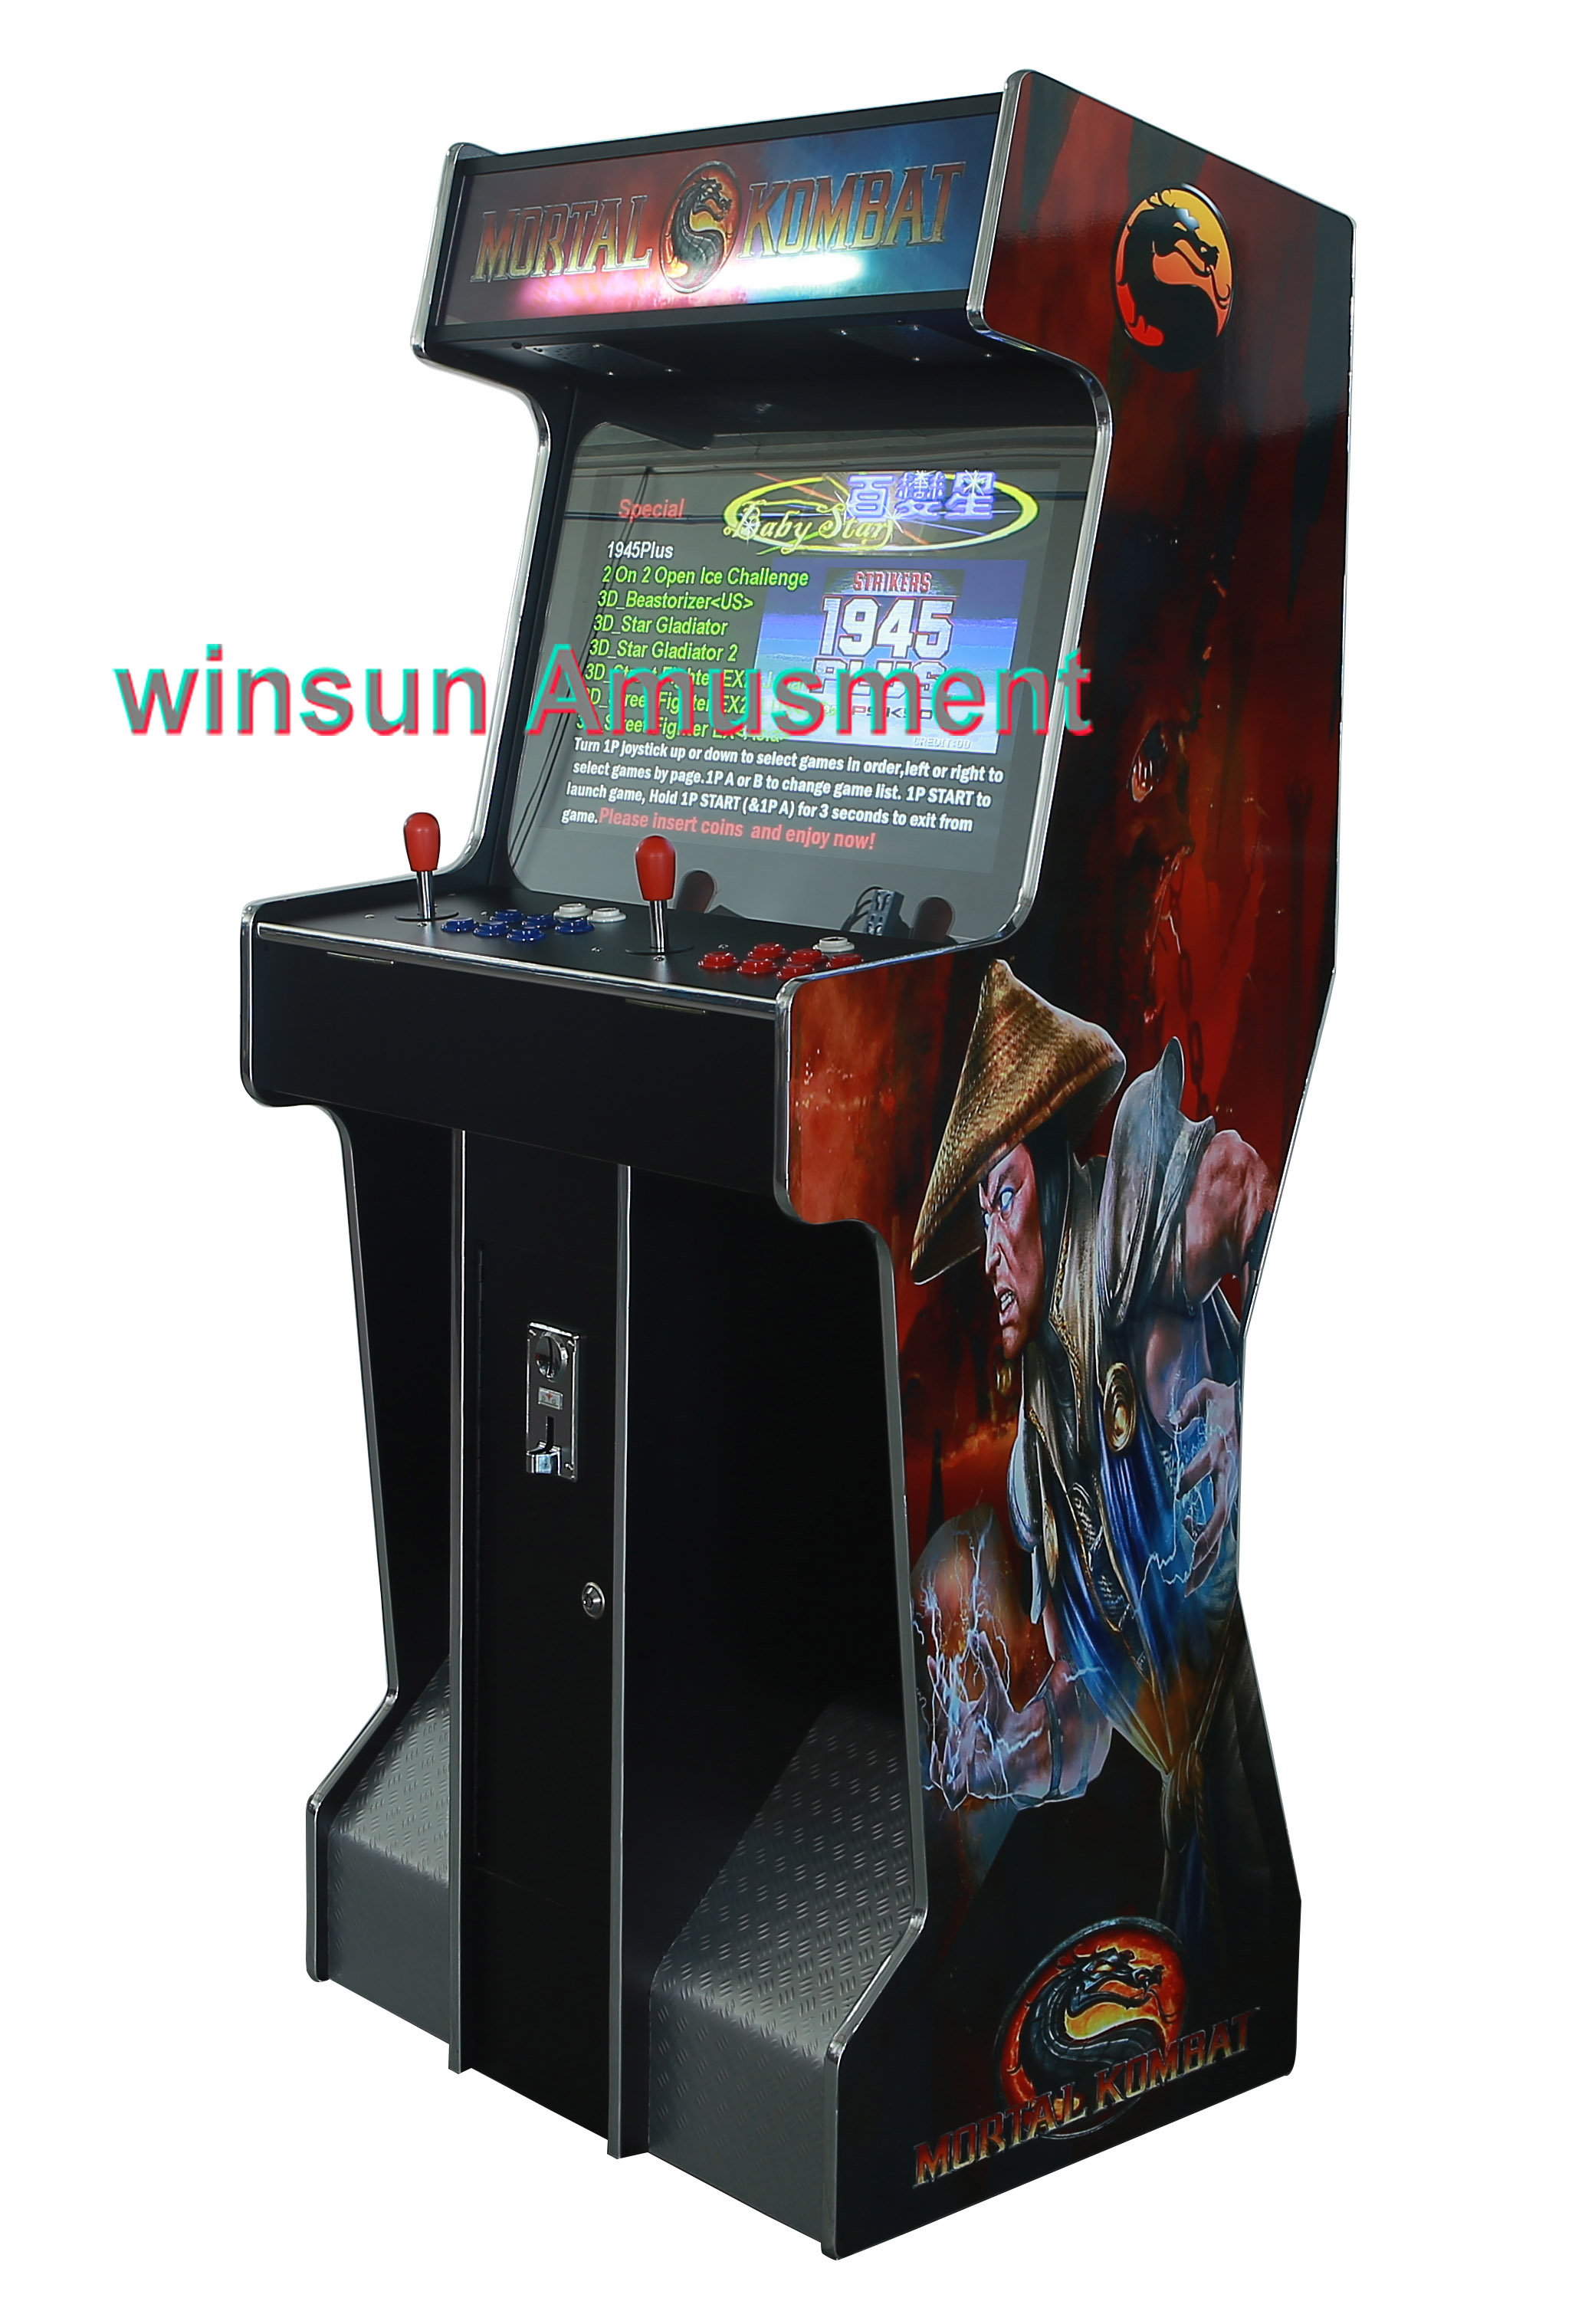 Arcade Classic Game Machine With 3500 Games - Buy Arcade ...